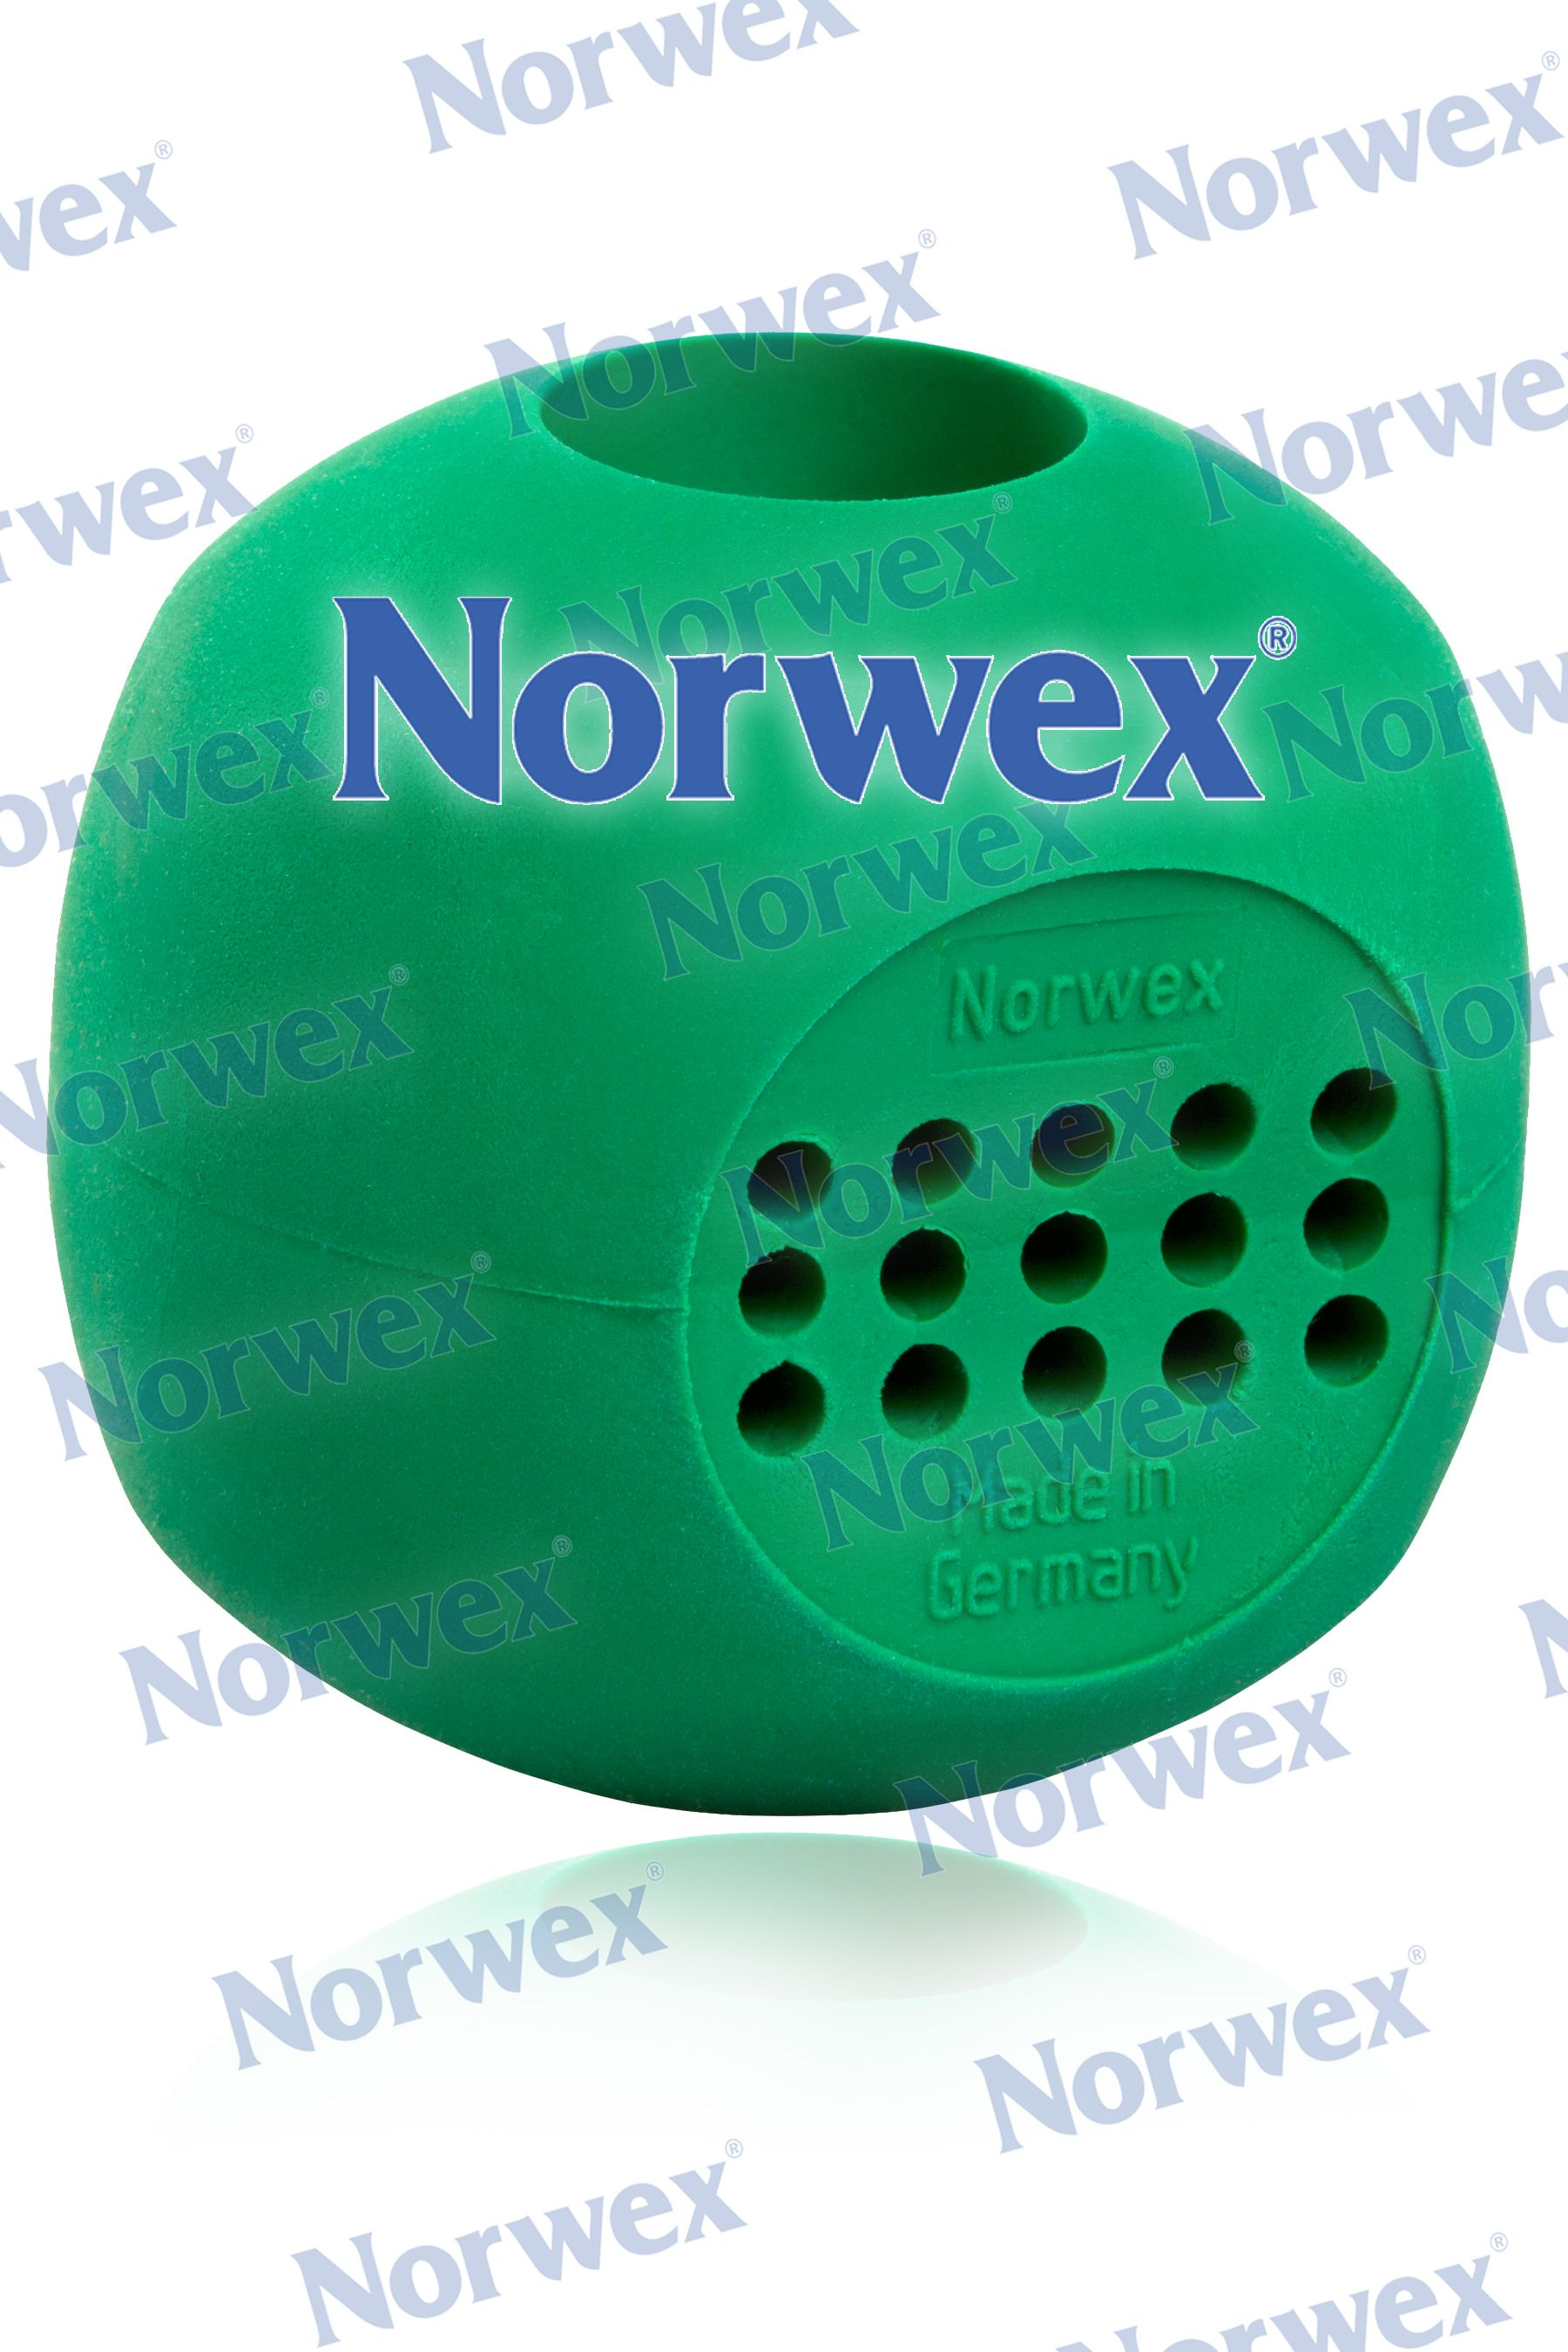 Norwex Magnet Ball Prevents Calciumlime Build Up In Dishwashers & Washing